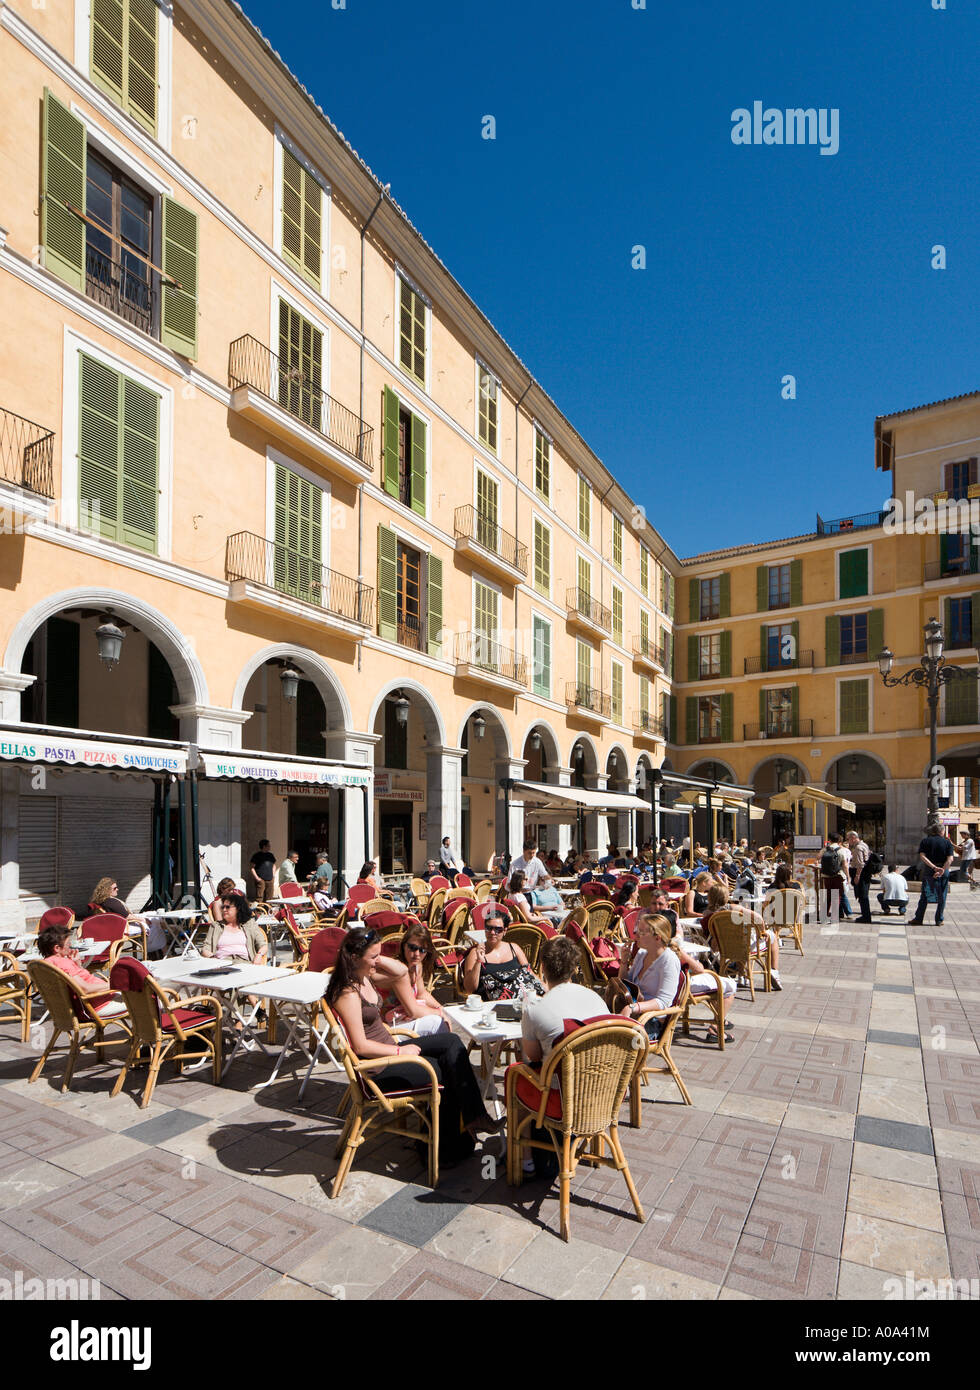 Restaurant in  Plaza Mayor (Placa Major), Palma, Mallorca, Balearic Islands, Spain - Stock Image